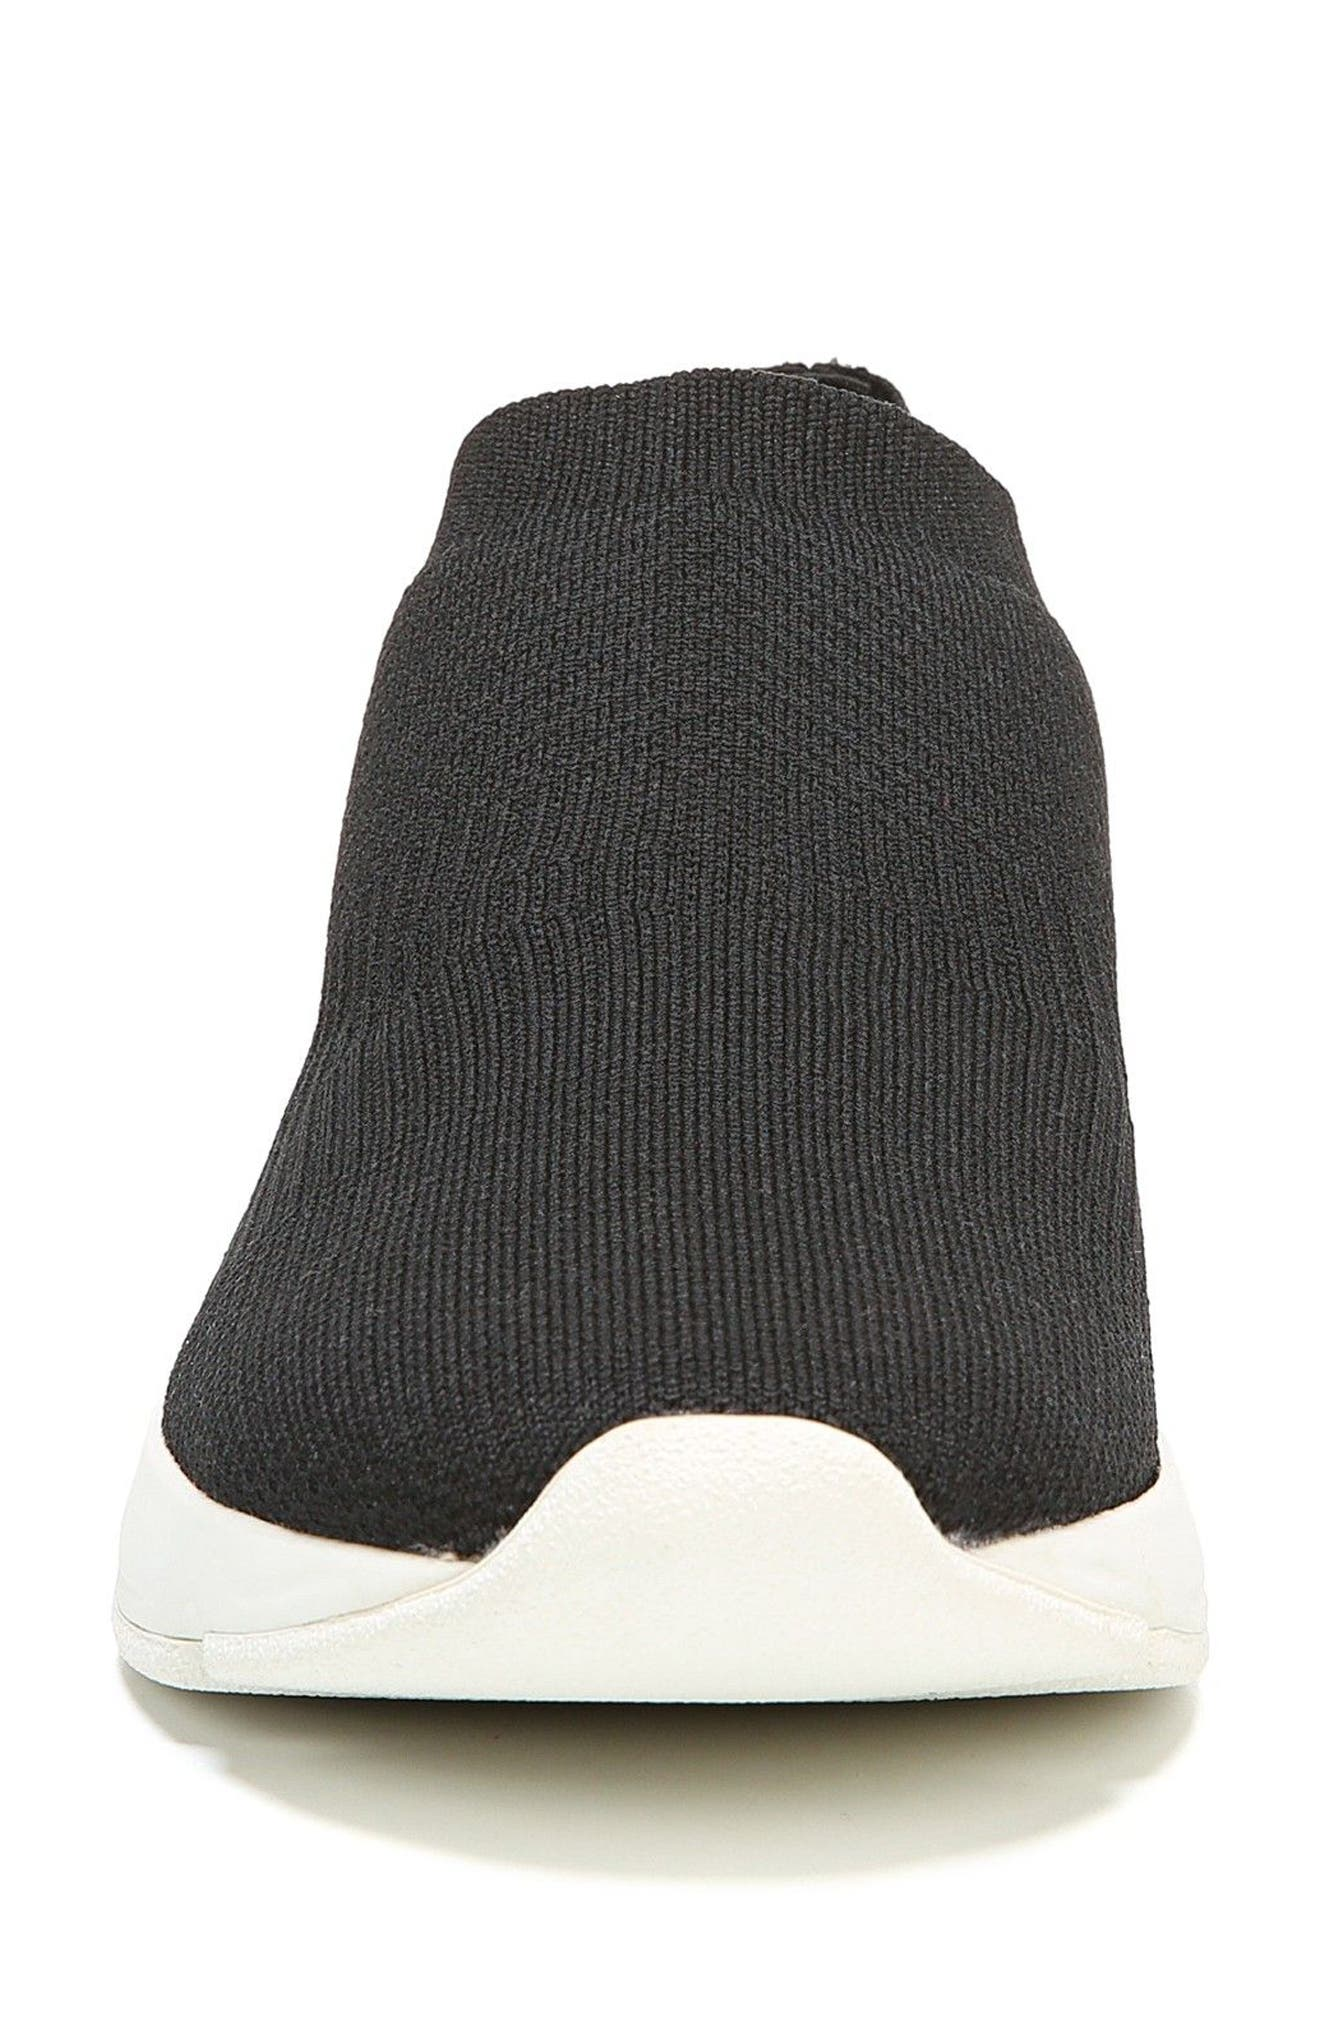 Theroux Slip-On Knit Sneaker,                             Alternate thumbnail 10, color,